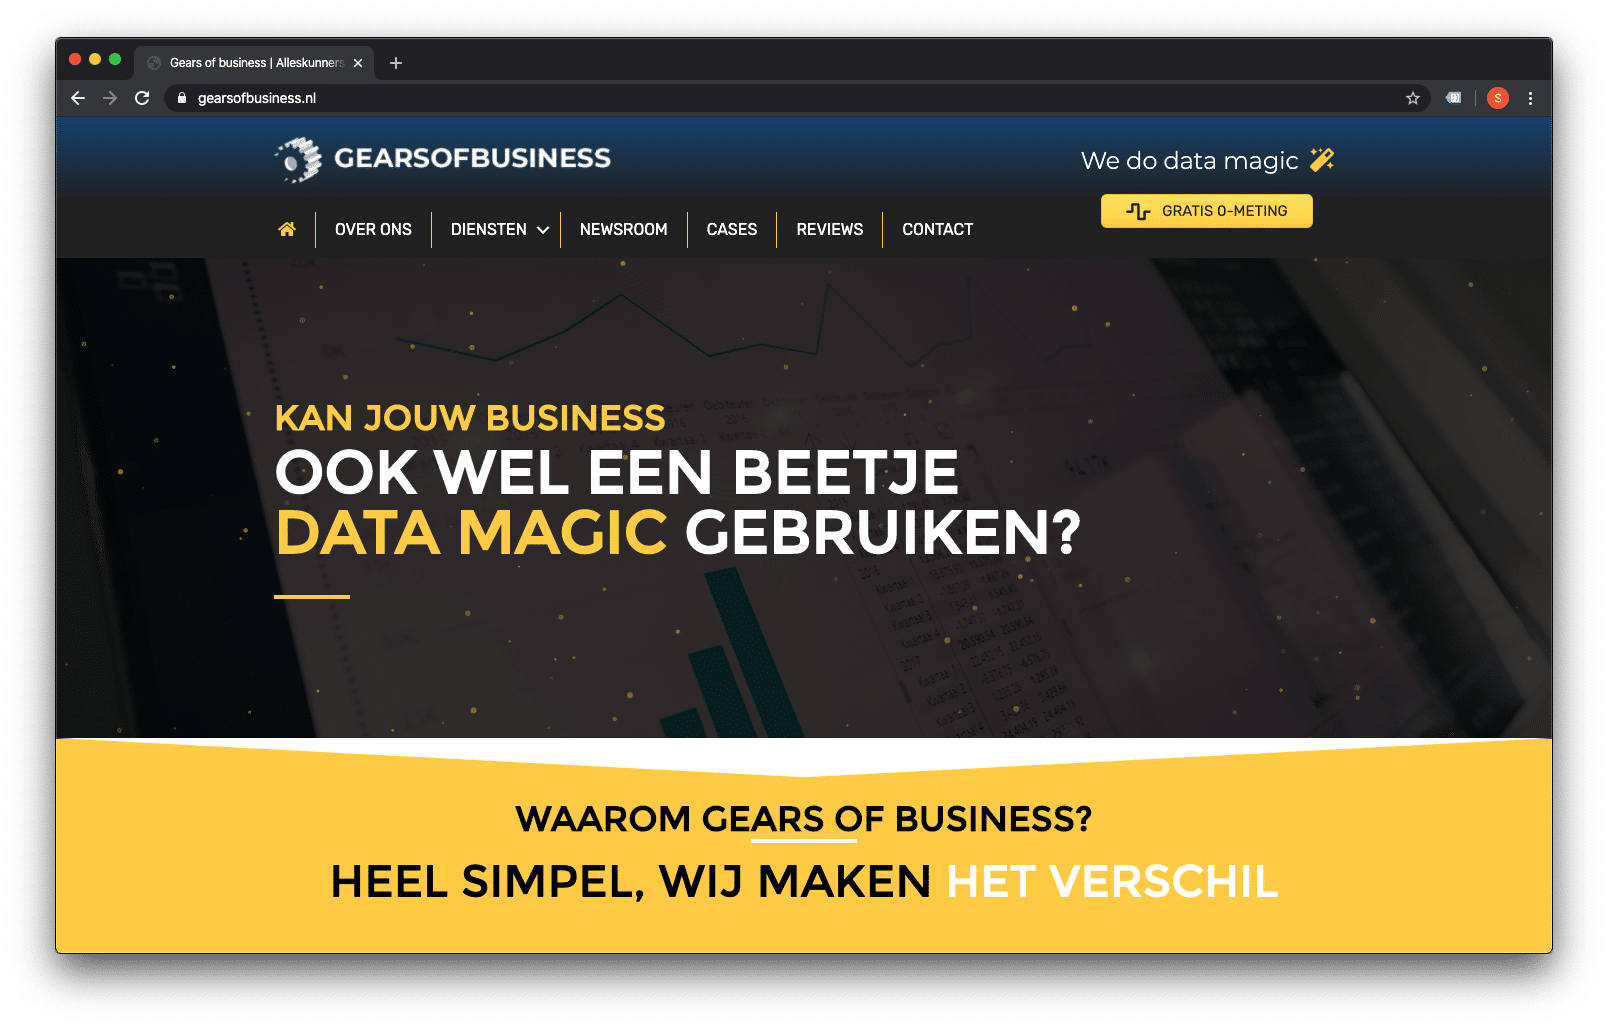 Gearsofbusiness.nl